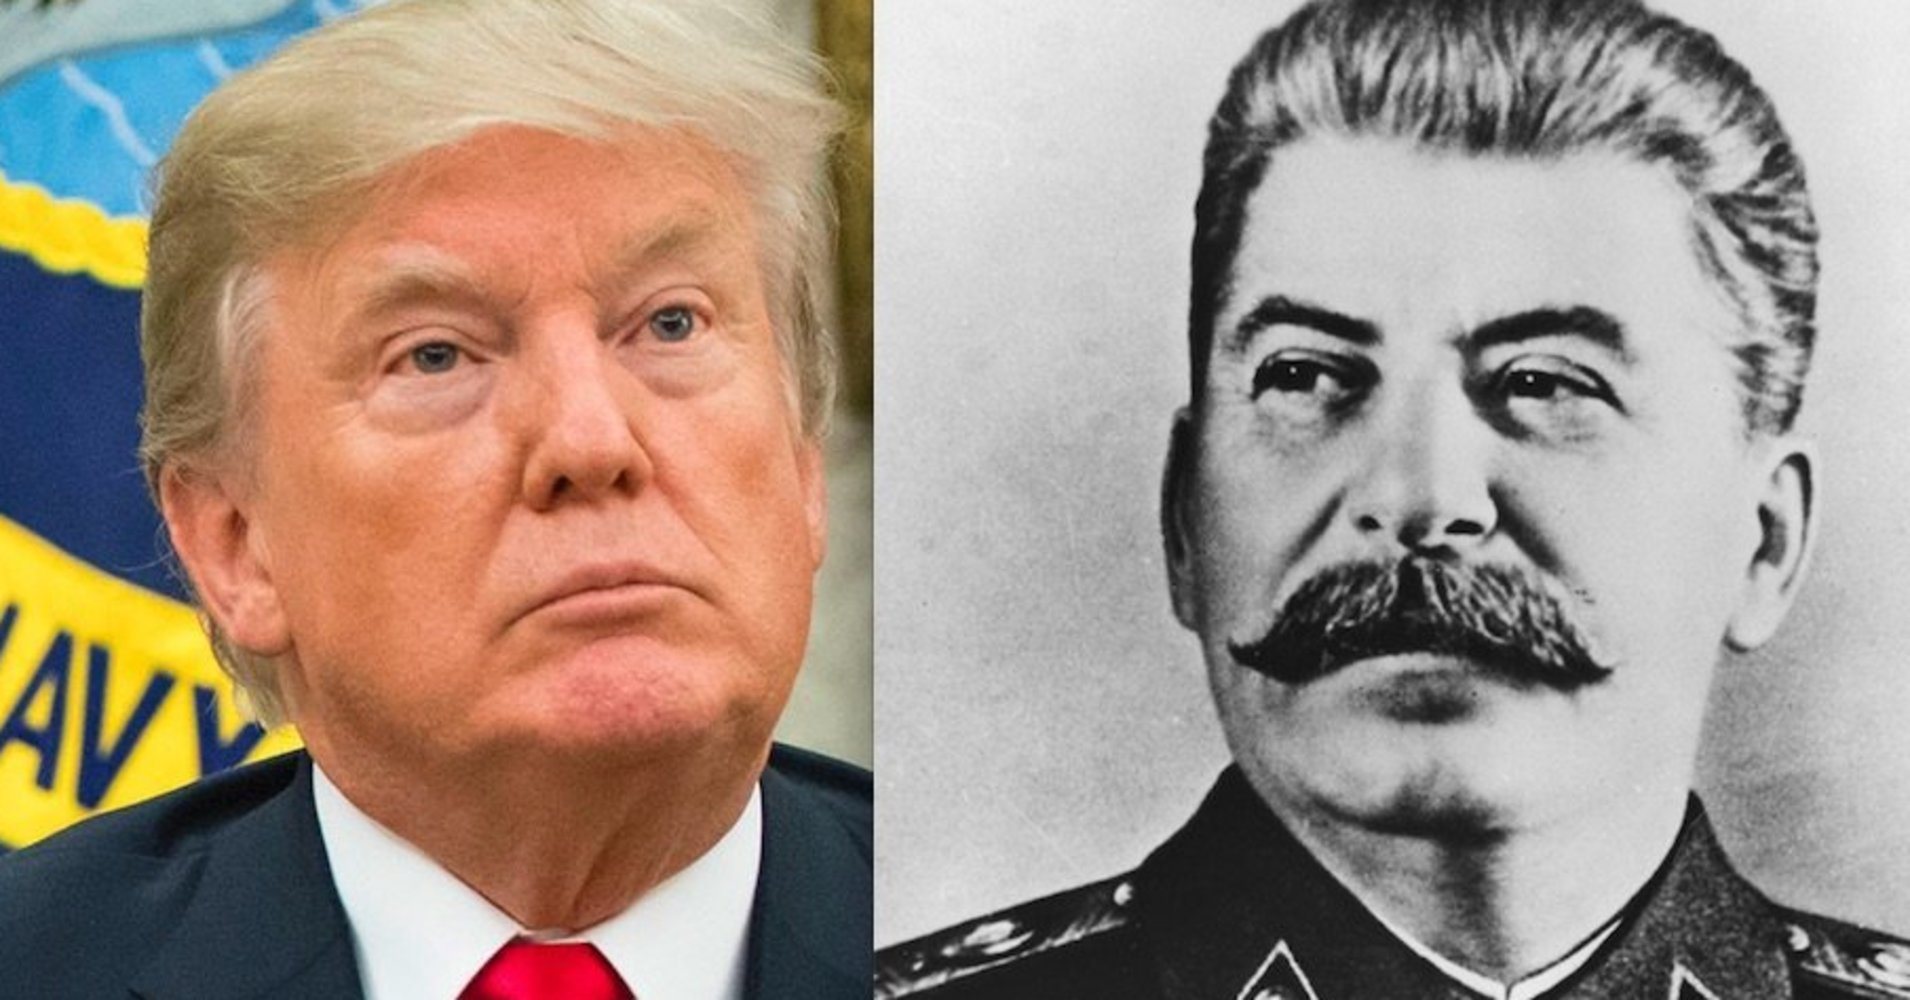 Khrushchev's granddaughter just compared Trump to Stalin https://t.co/A4OHjduA2I https://t.co/Rjvv3wTyjb